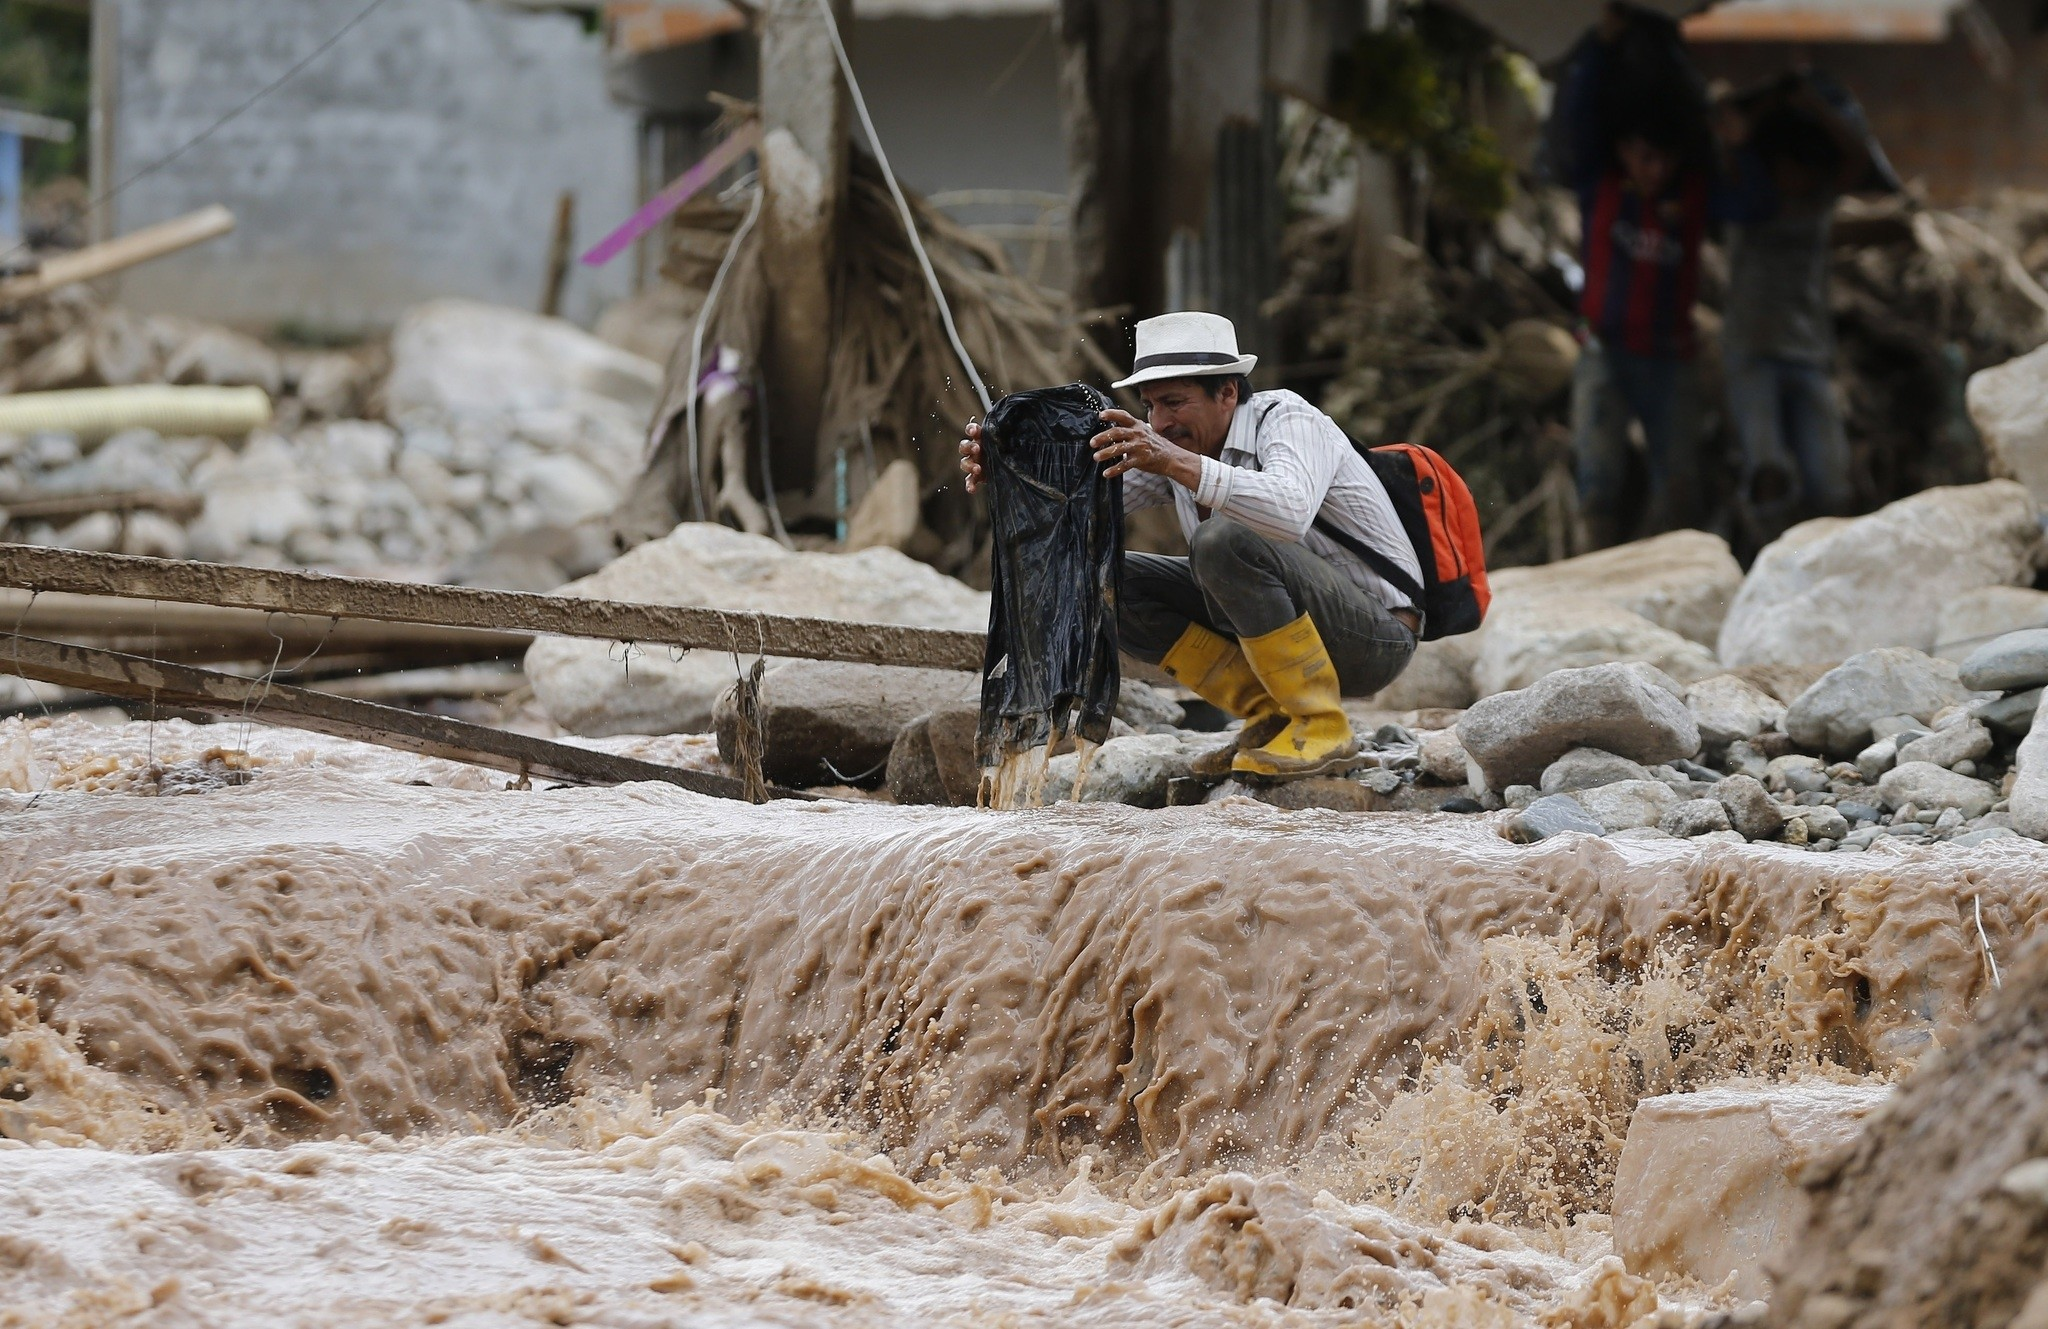 A man holds recovered from the mud in Mocoa, Colombia, Sunday, April 2, 2017. (AP Photo)